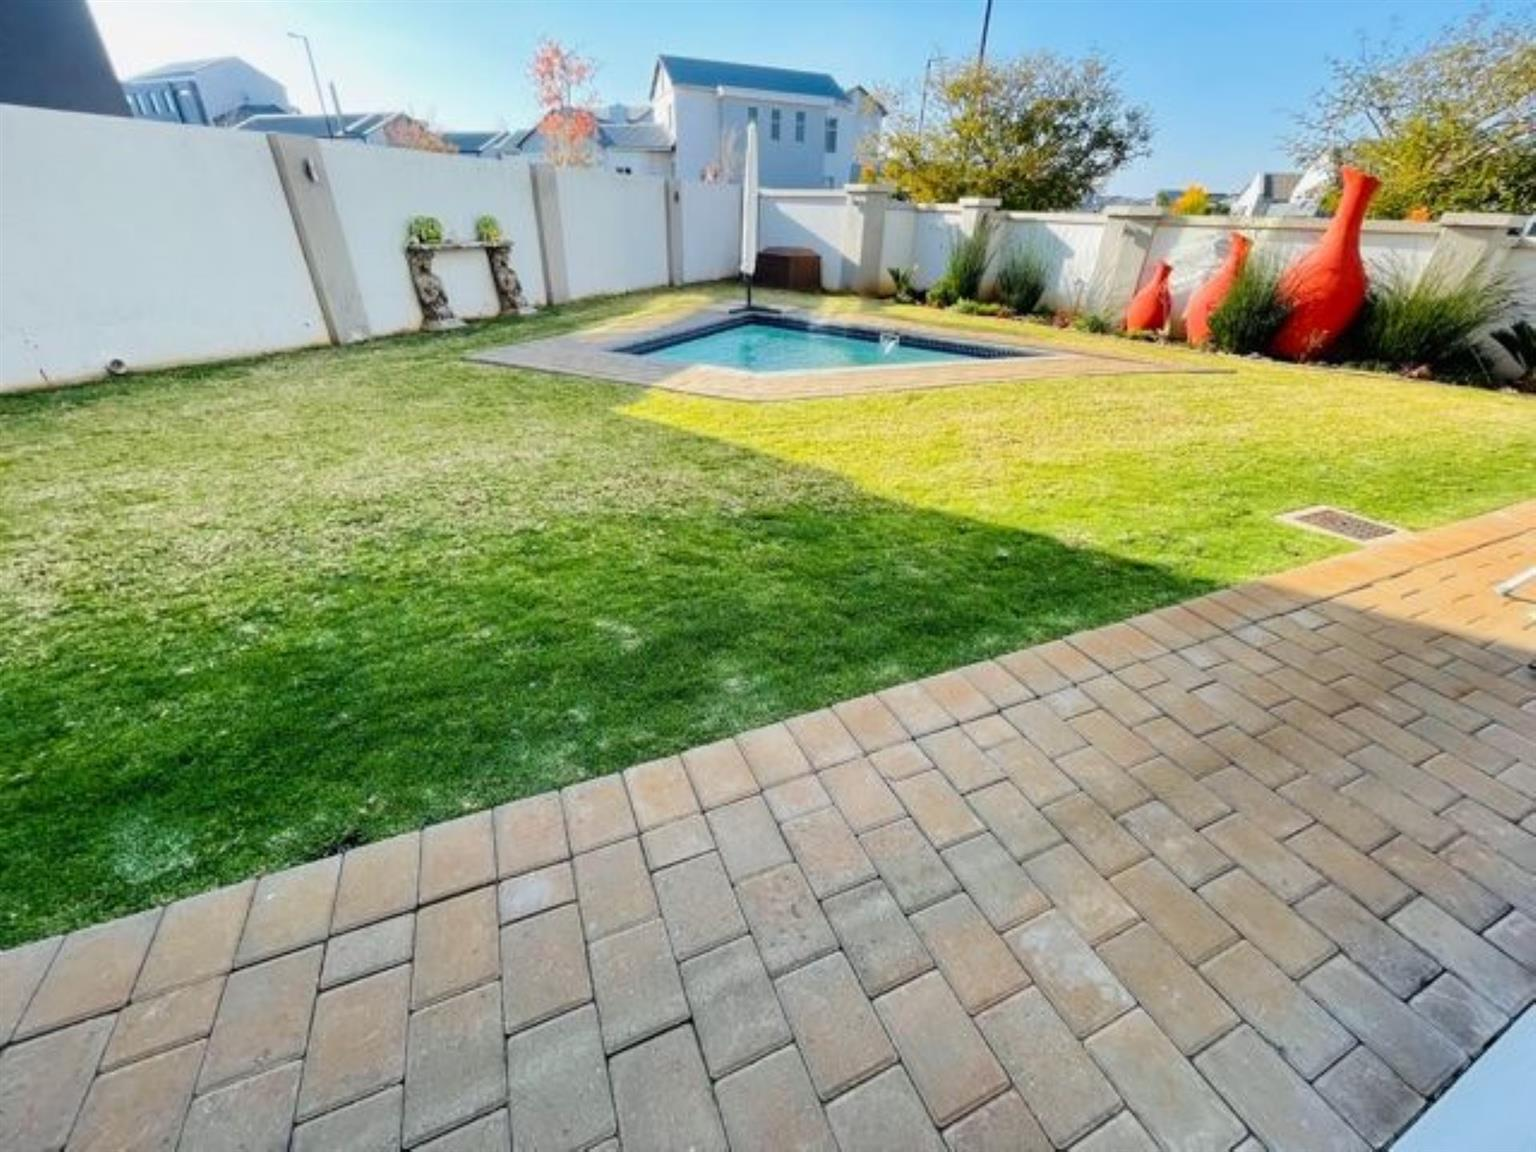 House For Sale in Midstream Meadows